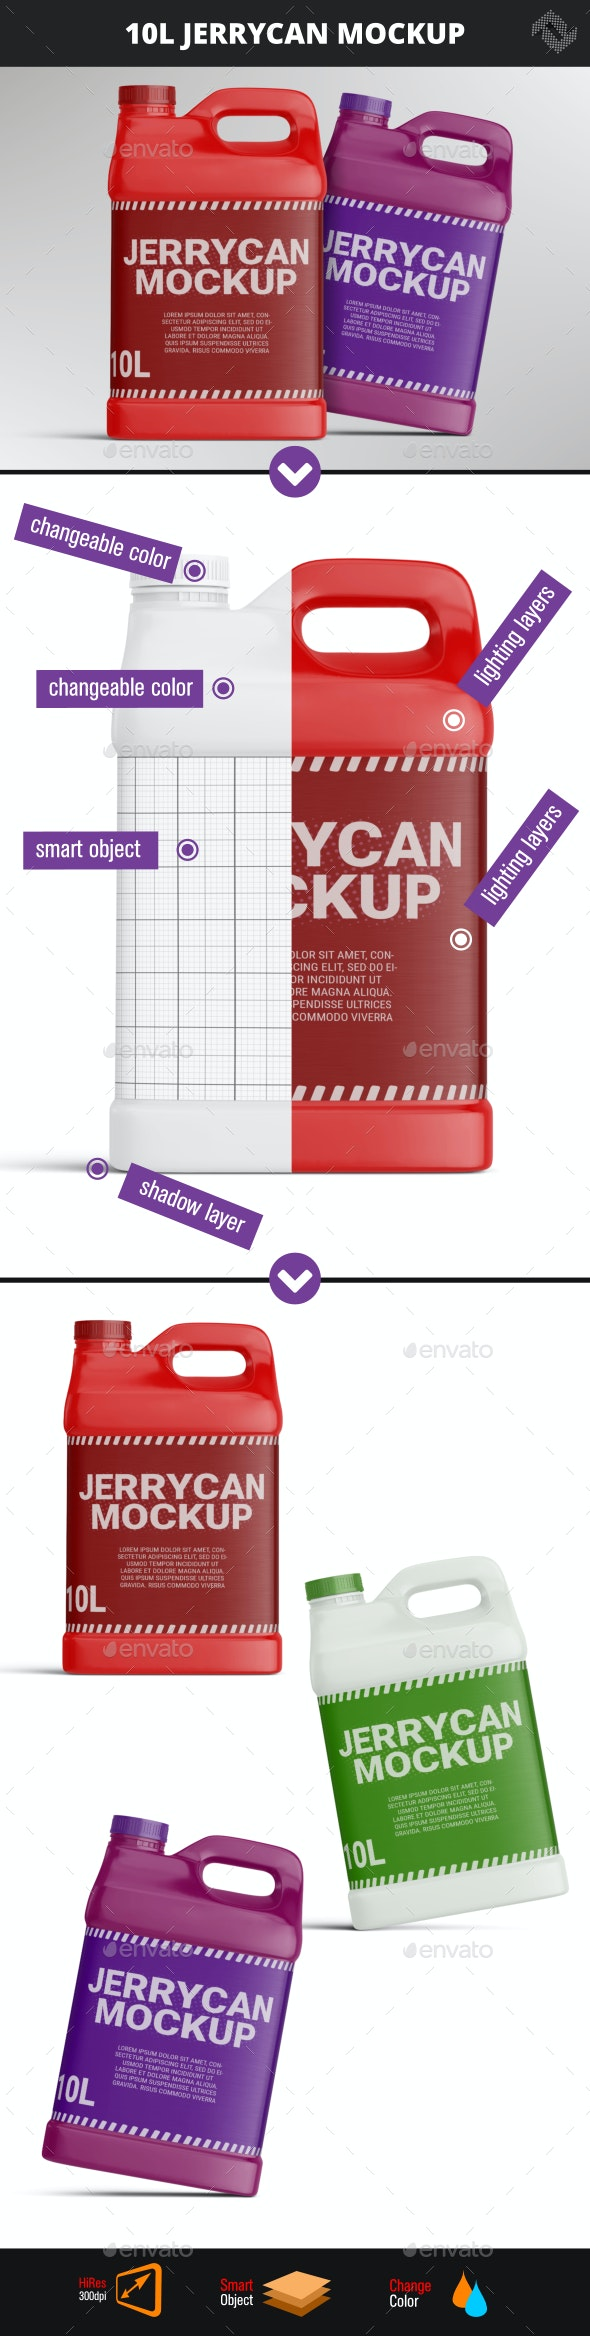 10 Liters 2.5 Gallon Plastic Jerry Can Mockup - Packaging Product Mock-Ups